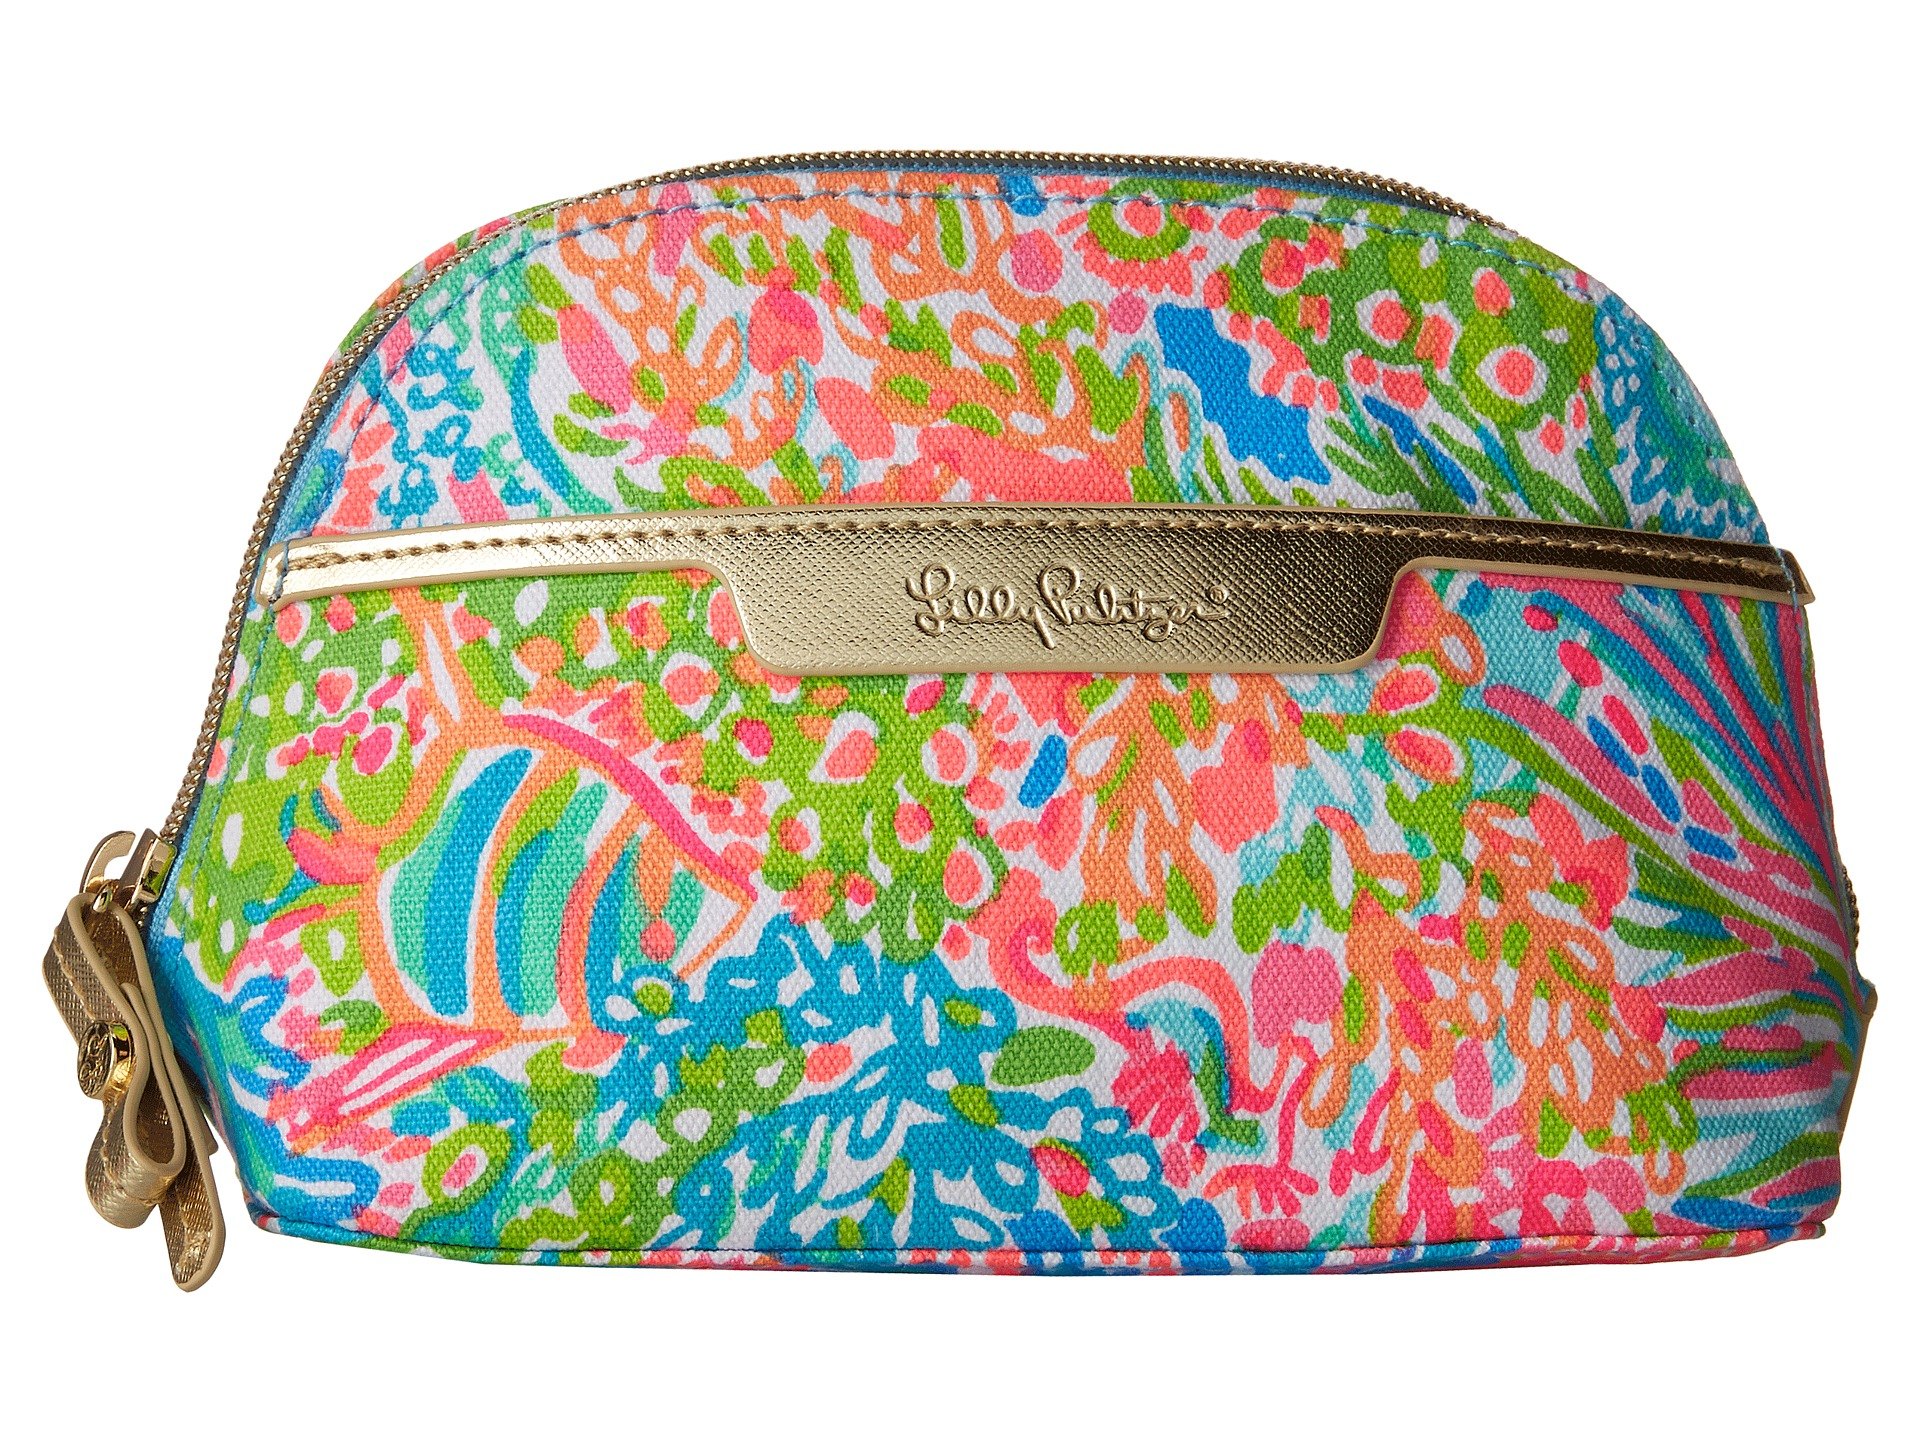 e324328d610c Lyst - Lilly Pulitzer Shore Cosmetic Bag